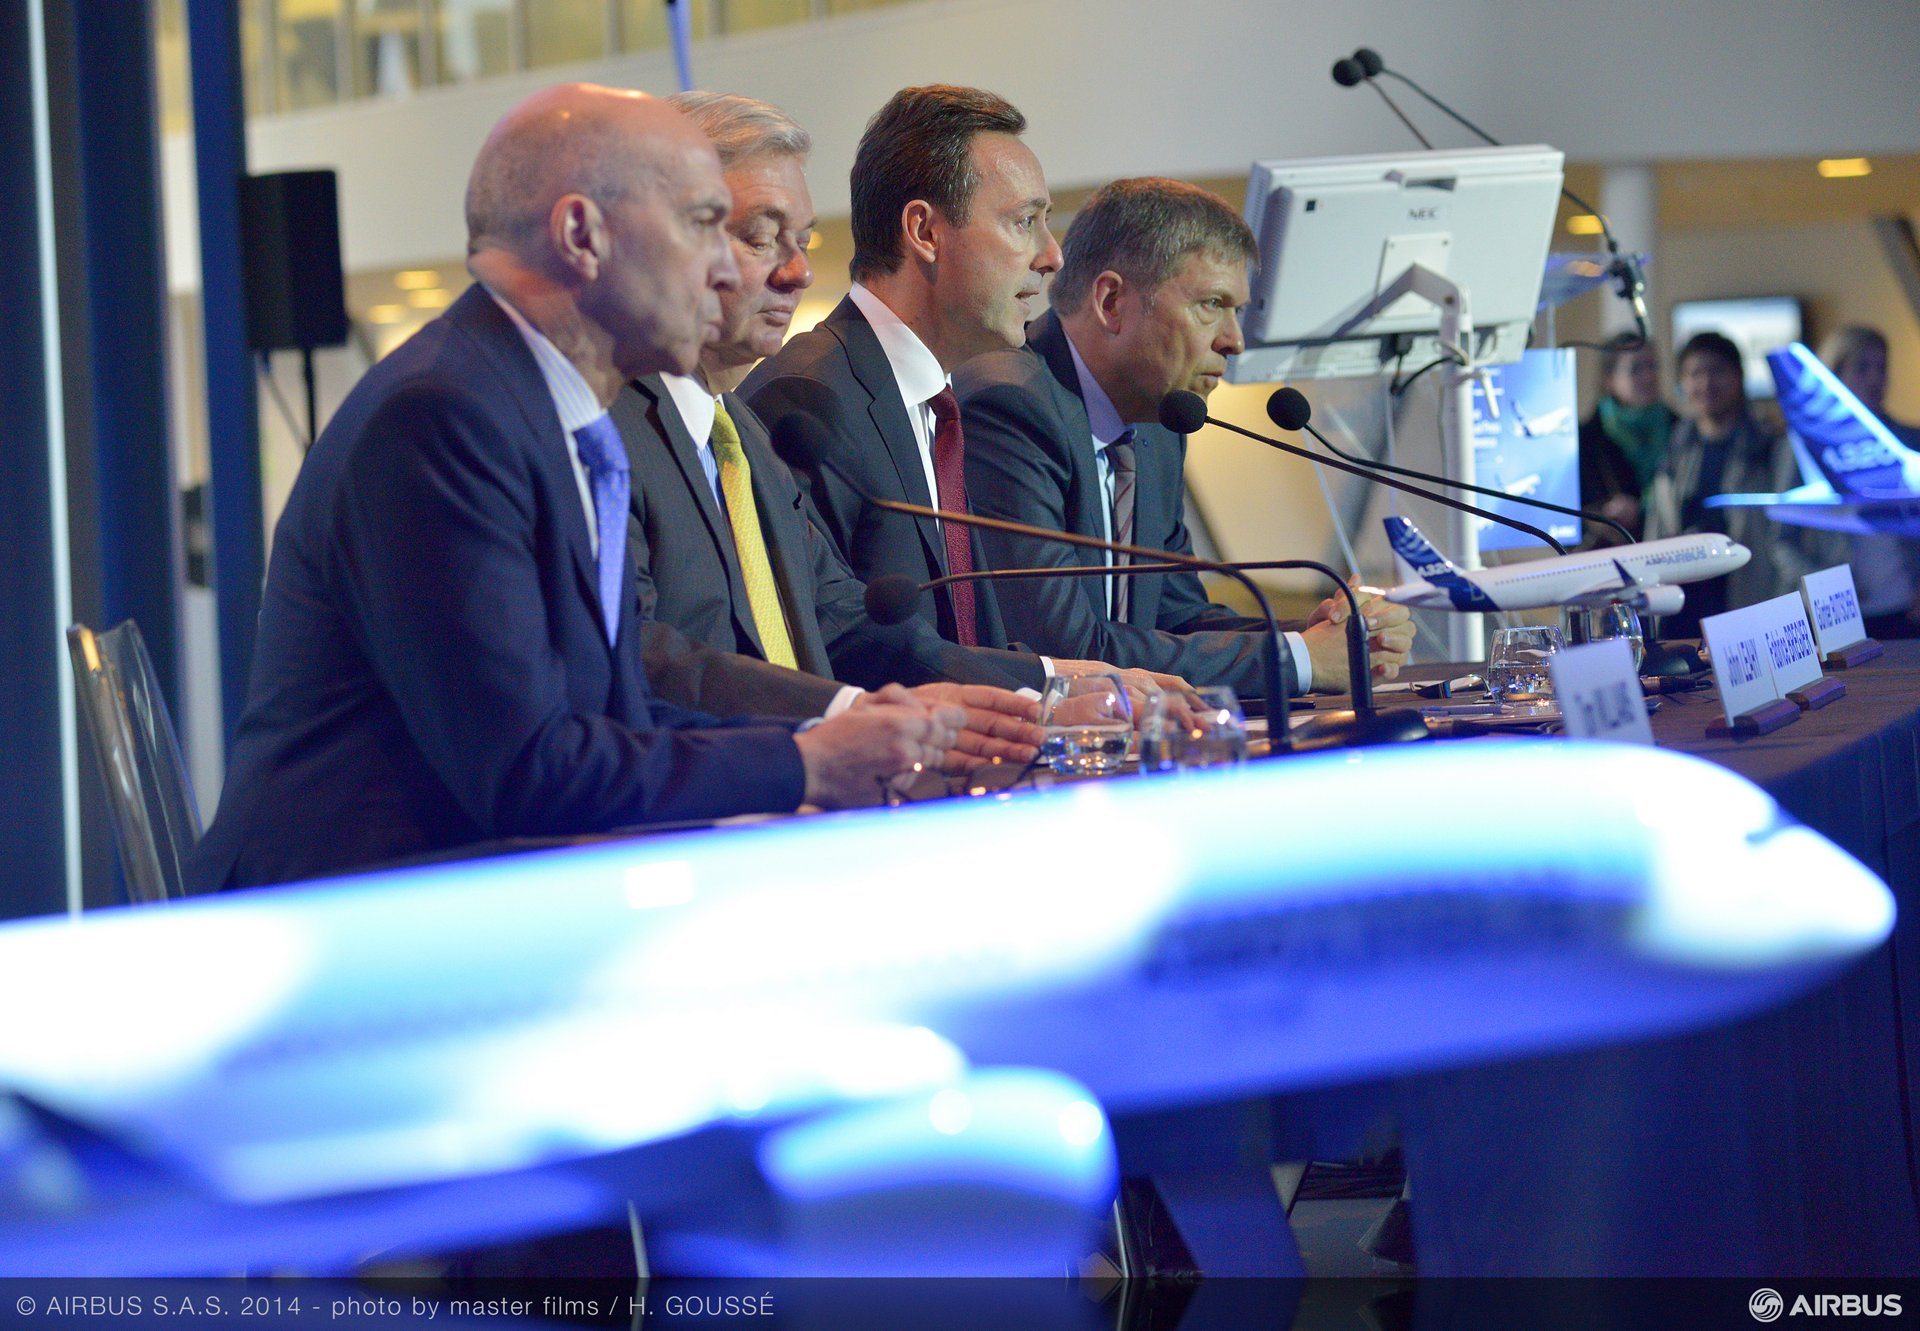 Key 2013 achievements highlighted during Airbus' year-opening press conference included its maiden flight of the A350 XWB, which is targeted for certification during the third quarter of 2014